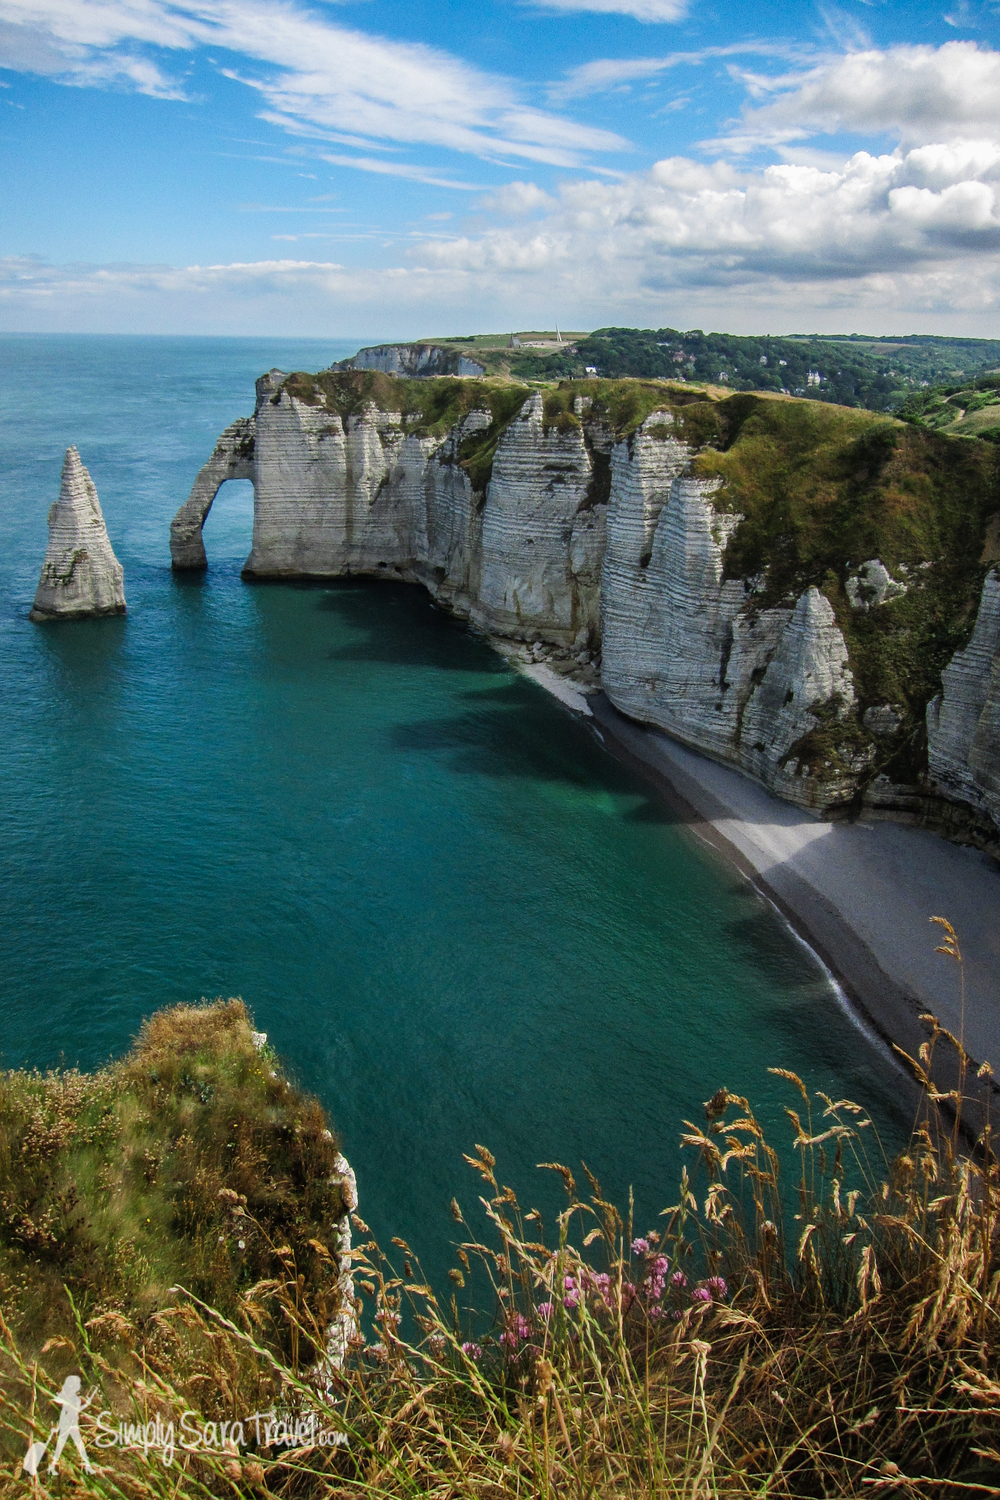 The beautiful white cliffs of Étretat that make up part of France's La Côte d'Albâtre (Alabaster Coast). (July 2013)